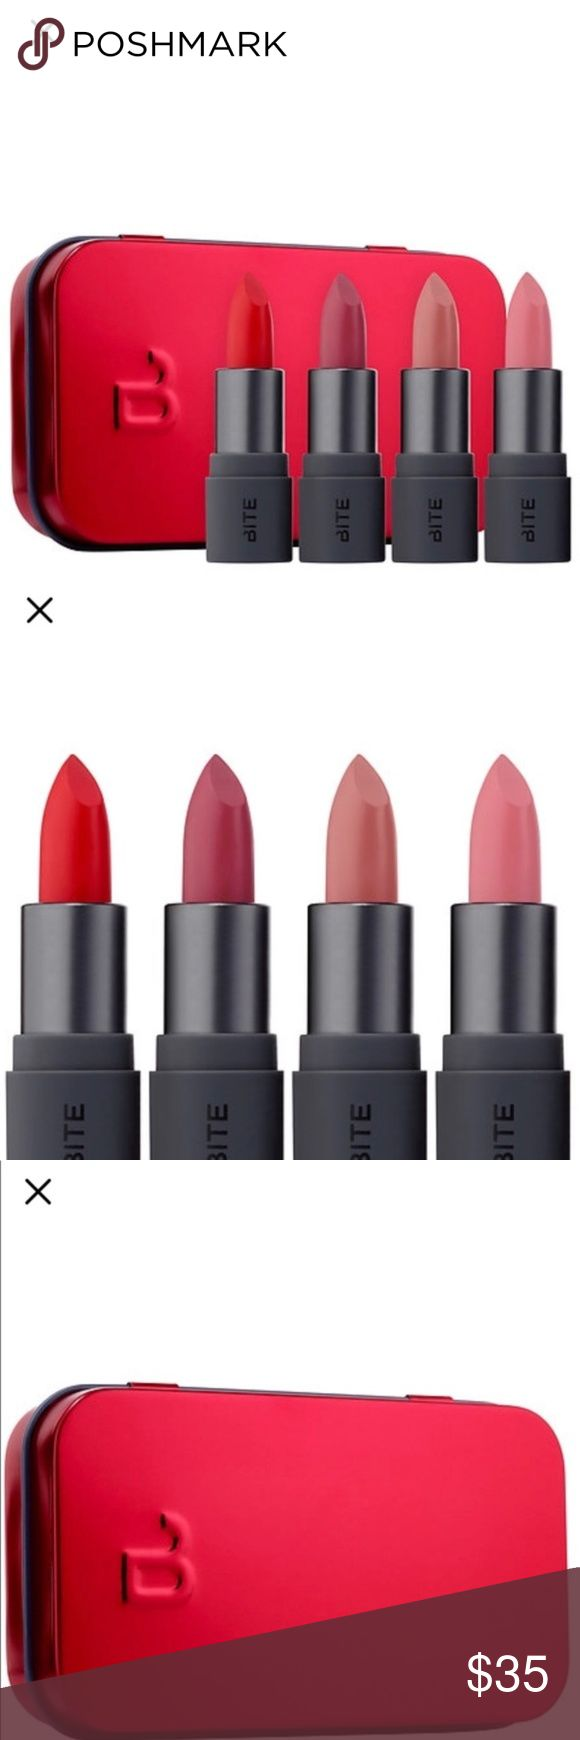 Bite Amuse lipstick set Four bestselling mini Bite Amuse Bouche Lipsticks that give lips either a subtle hint of color or a bright pop—all with a satin finish. Create flawless and polished lip looks with this giftable collection of trendy nude and bold shades.New never used. Deluxe size- 4 x .05 oz/ 1.55 g Lipsticks in Honeycomb (beige nude), Sugarcane (pale pink), Rhubarb (rich plum rose), Cayenne (bright red)  Bite Beauty is crafted with natural and food grade ingredients. Lip products do